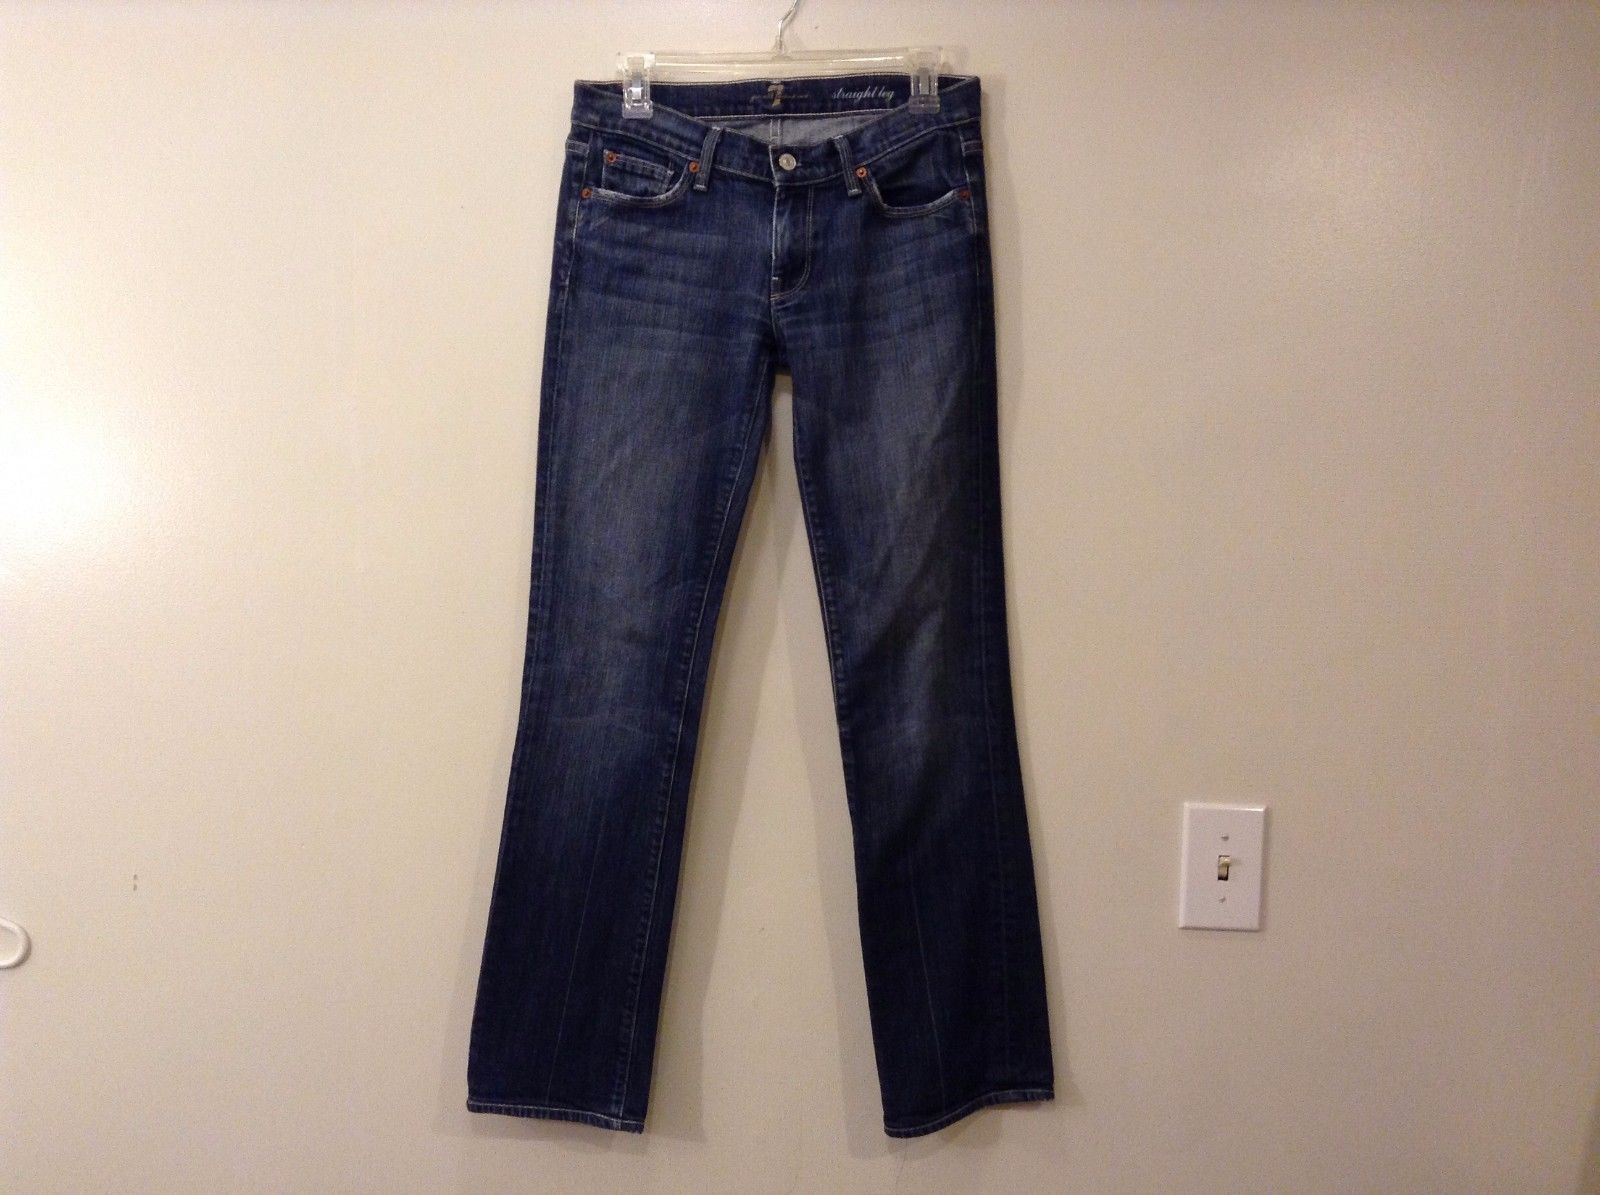 7 For All Mankind Blue Dark Wash Straight Leg Jeans Size 28 Low Rise Excellent